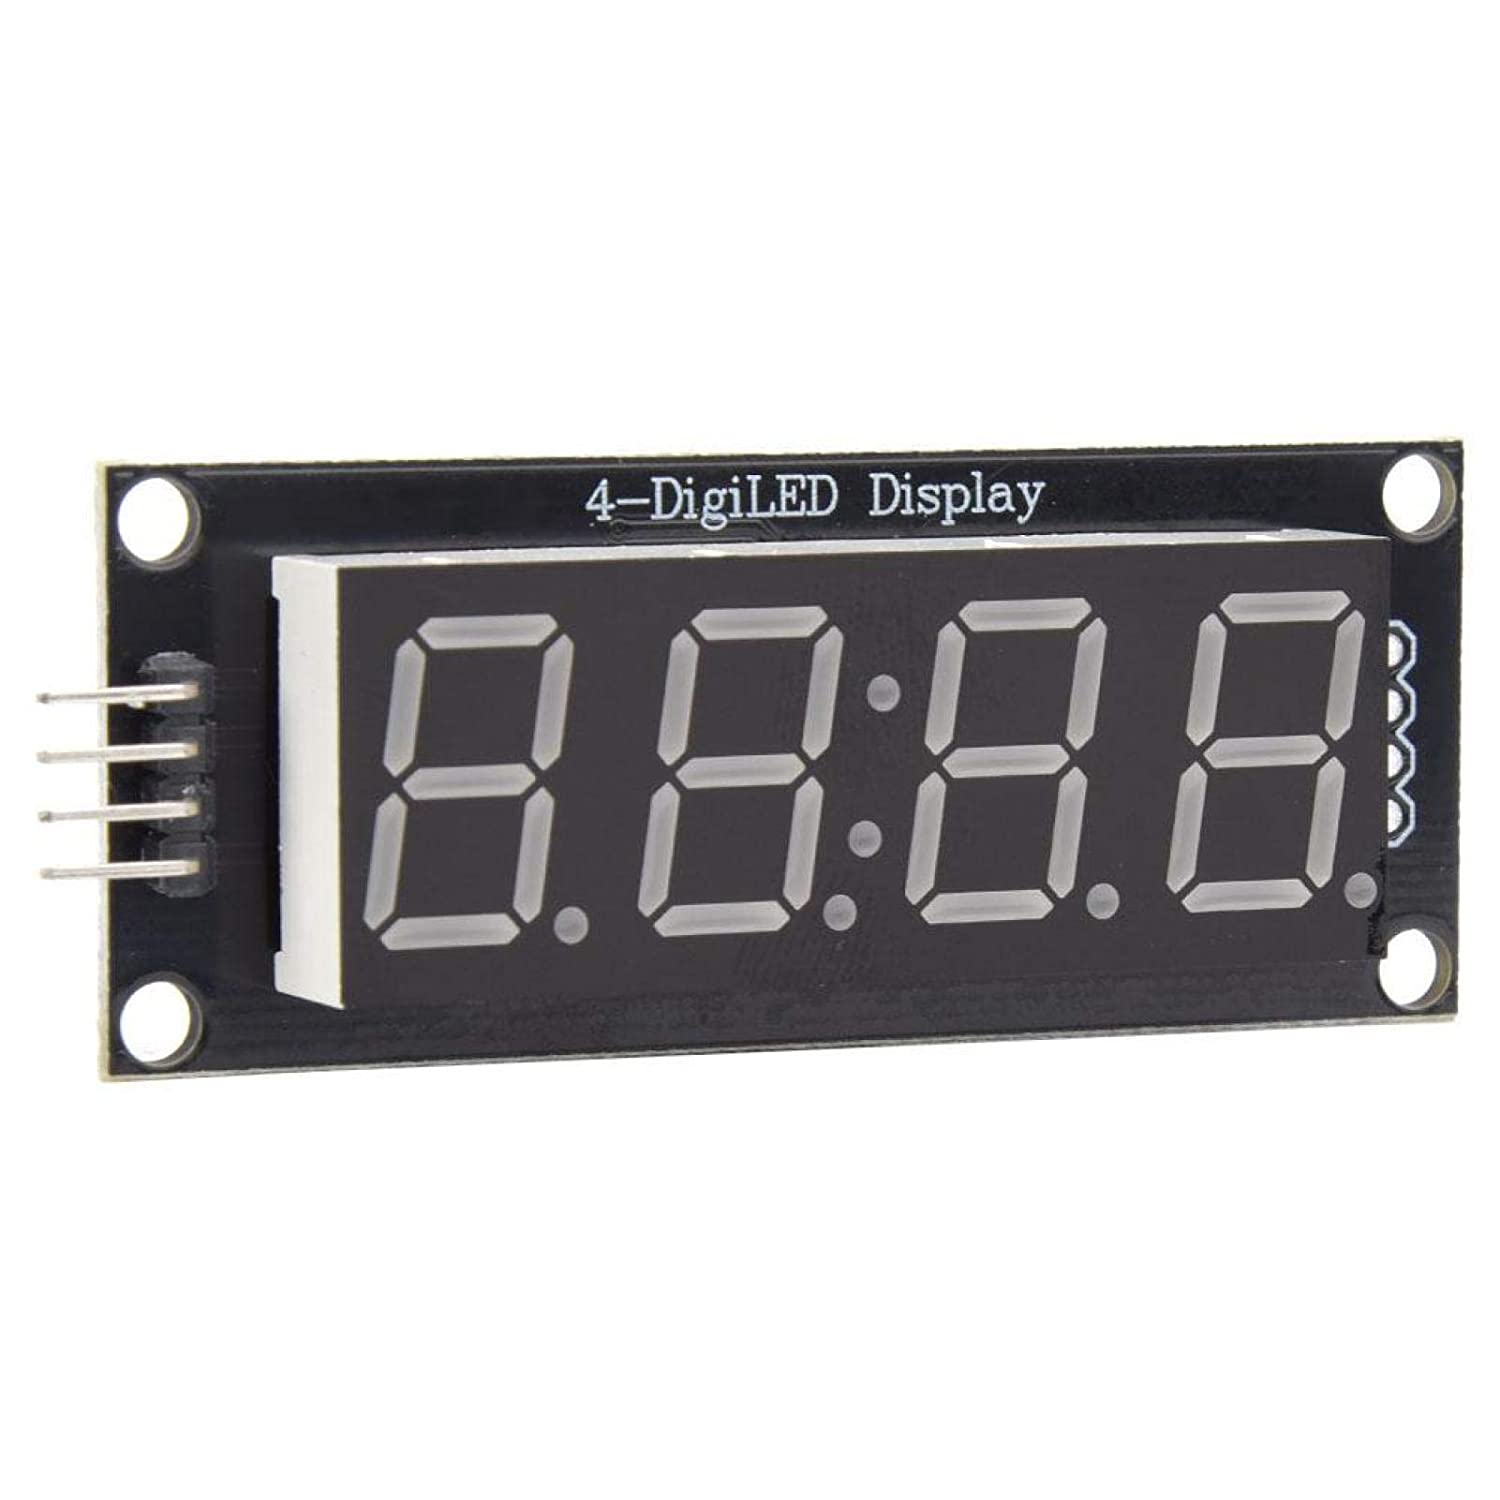 Max 67% OFF LED Display 4 Mounting Popular shop is the lowest price challenge Holes 2 Digital Displa 7-Segment for Pins